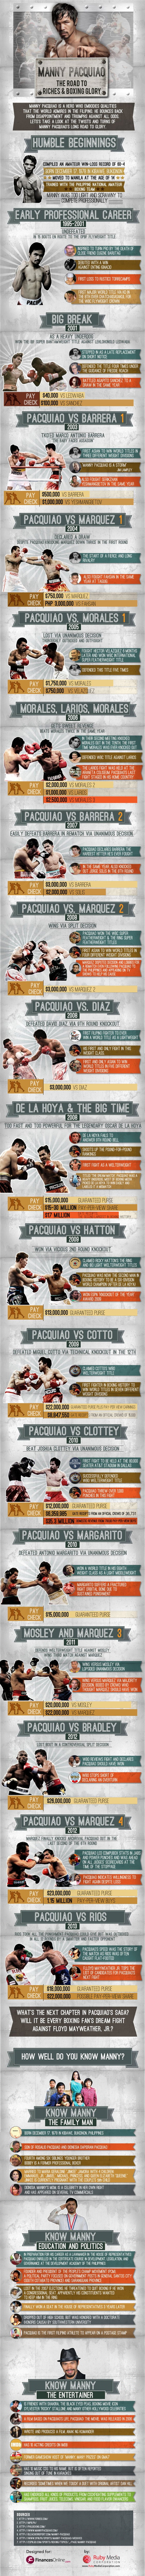 Infographic   Manny Pacquiao: A True Story Of A Filipino Hero   Updated